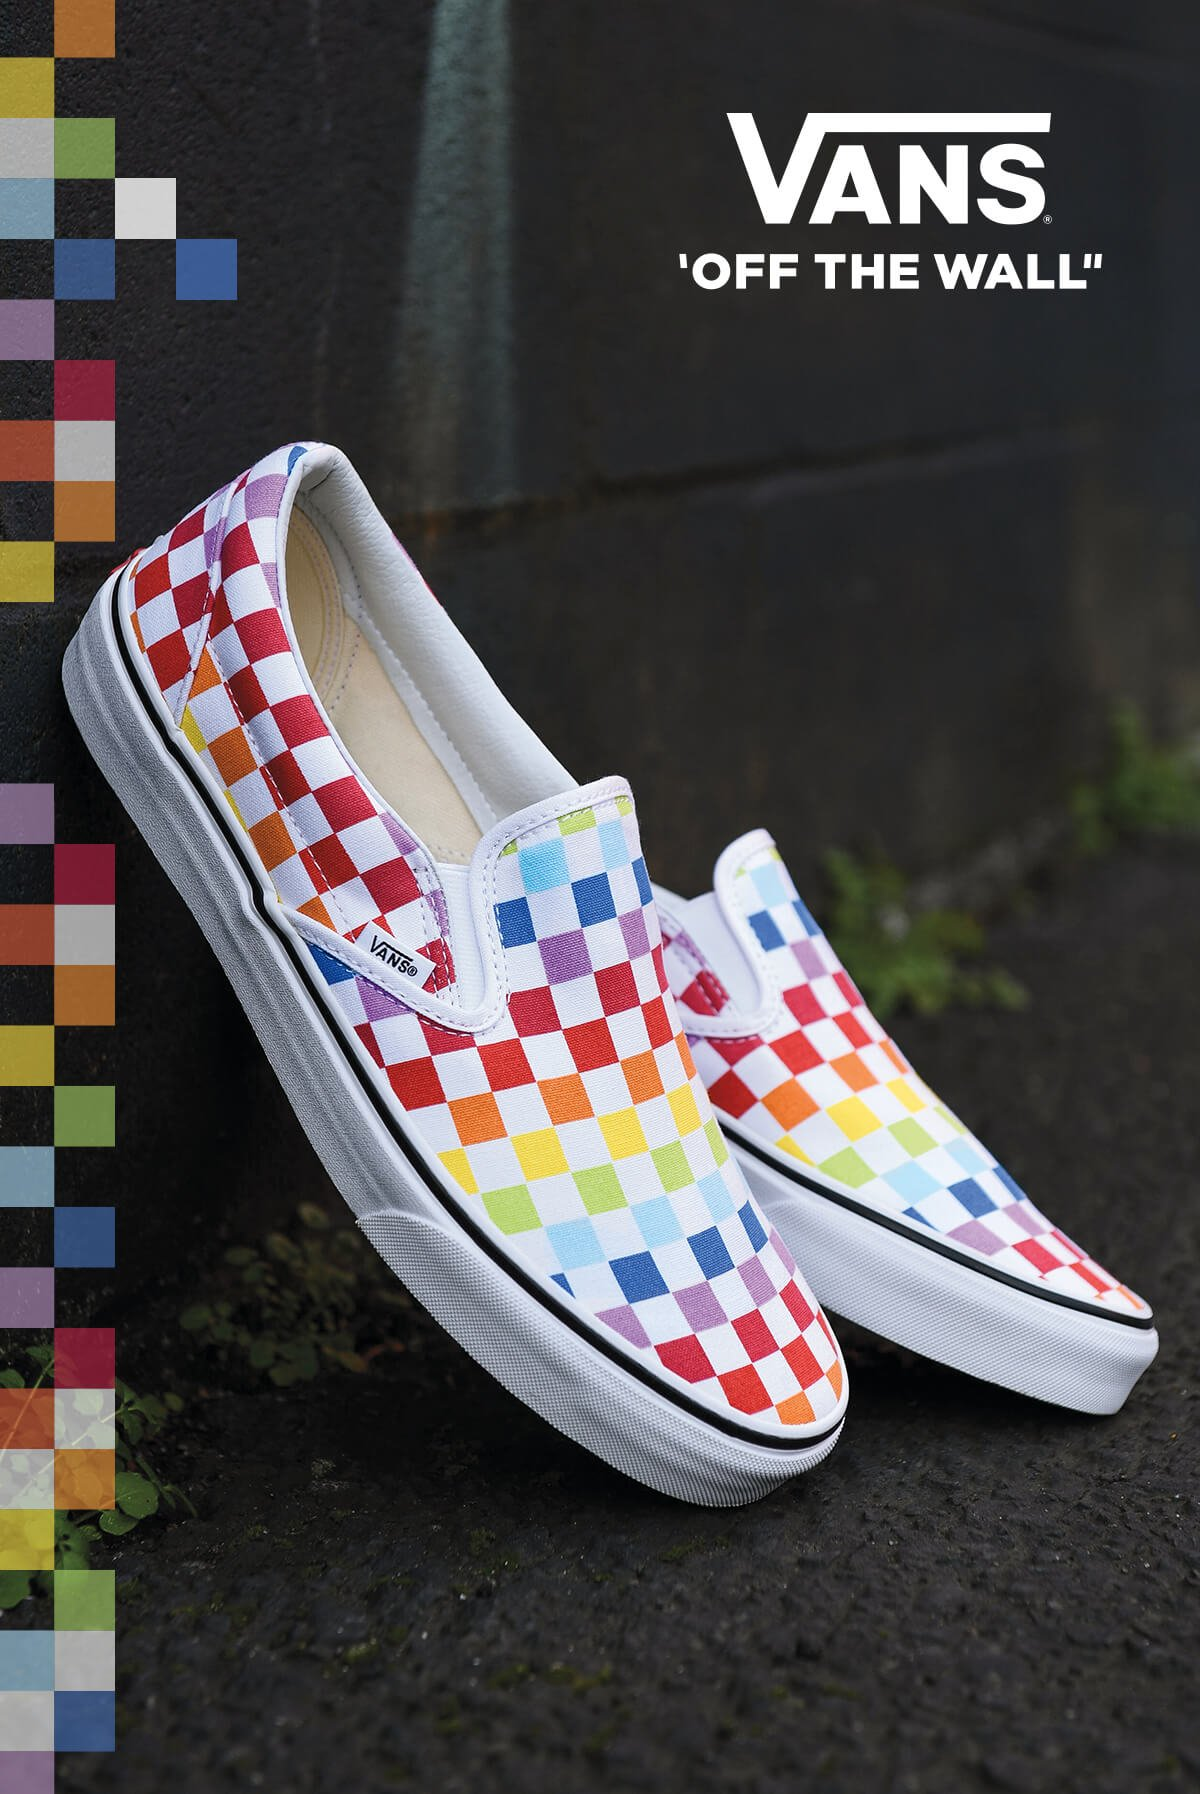 NEW FOOTWEAR ARRIVALS FEATURING NEW RAINBOW CHECKERS & MORE - SHOP NEW VANS NOW